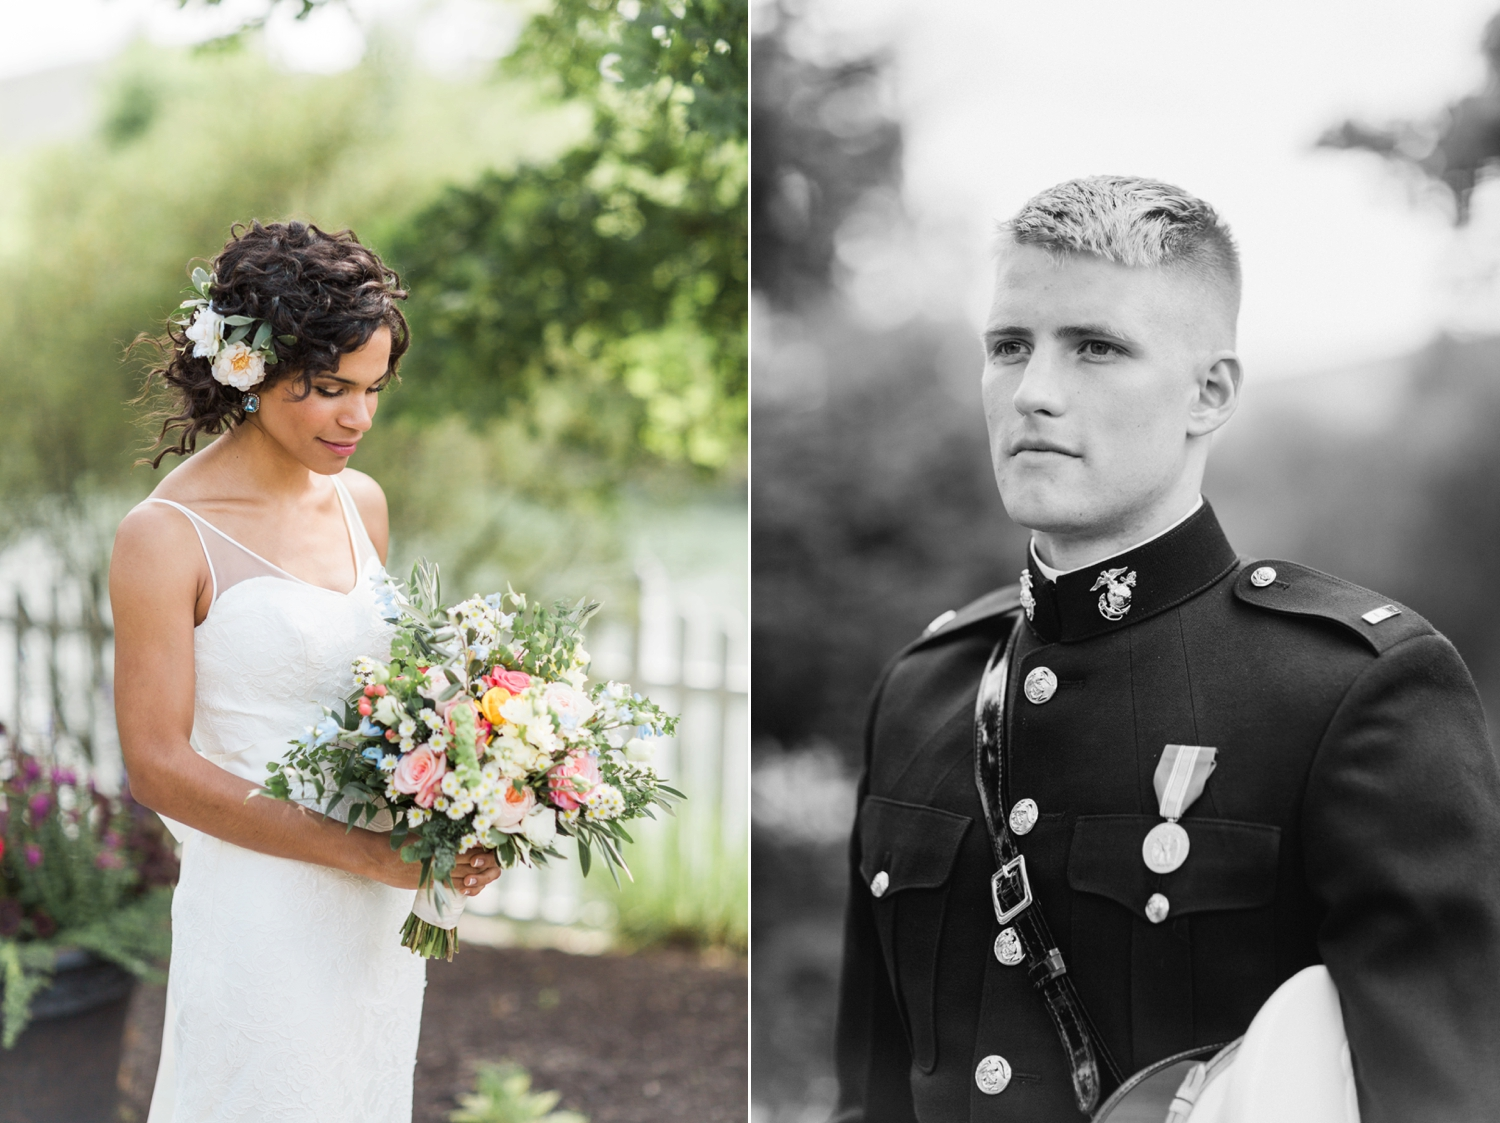 Wedding-at-The-Savannah-Center-West-Chester-Ohio-Photography-Chloe-Luka-Photography_7418.jpg